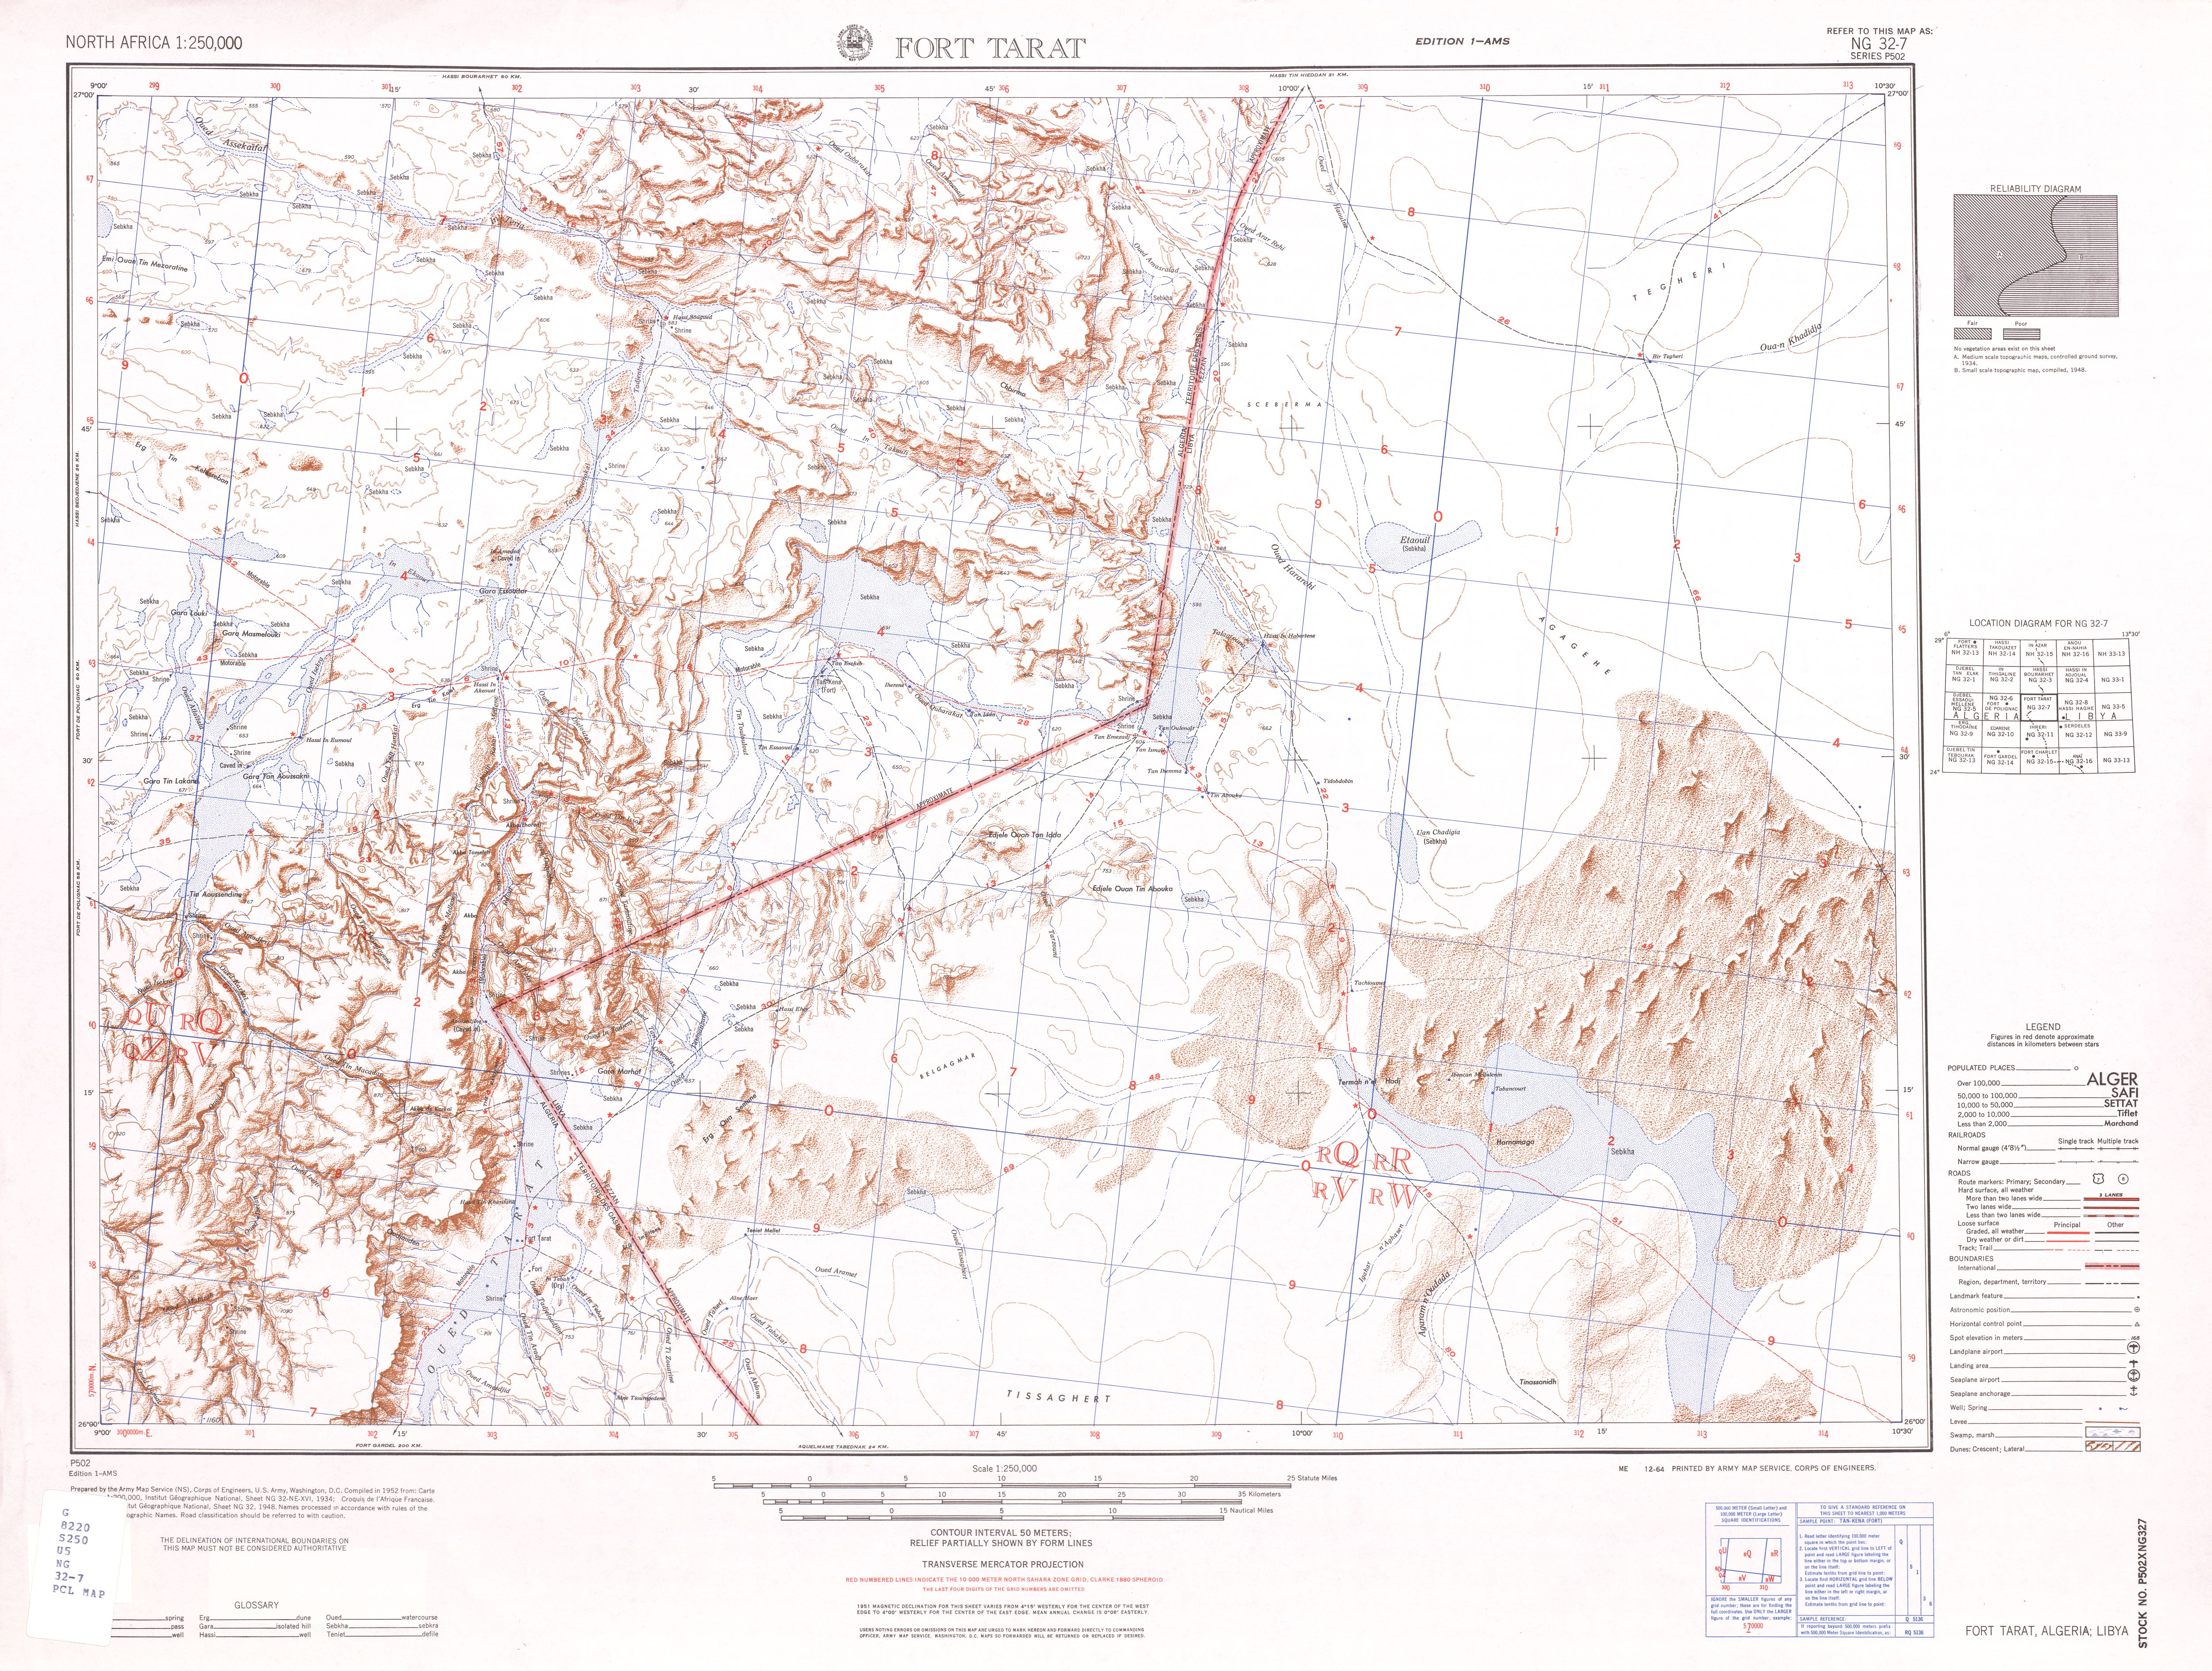 North Africa Ams Topographic Maps Perry Castaneda Map Collection